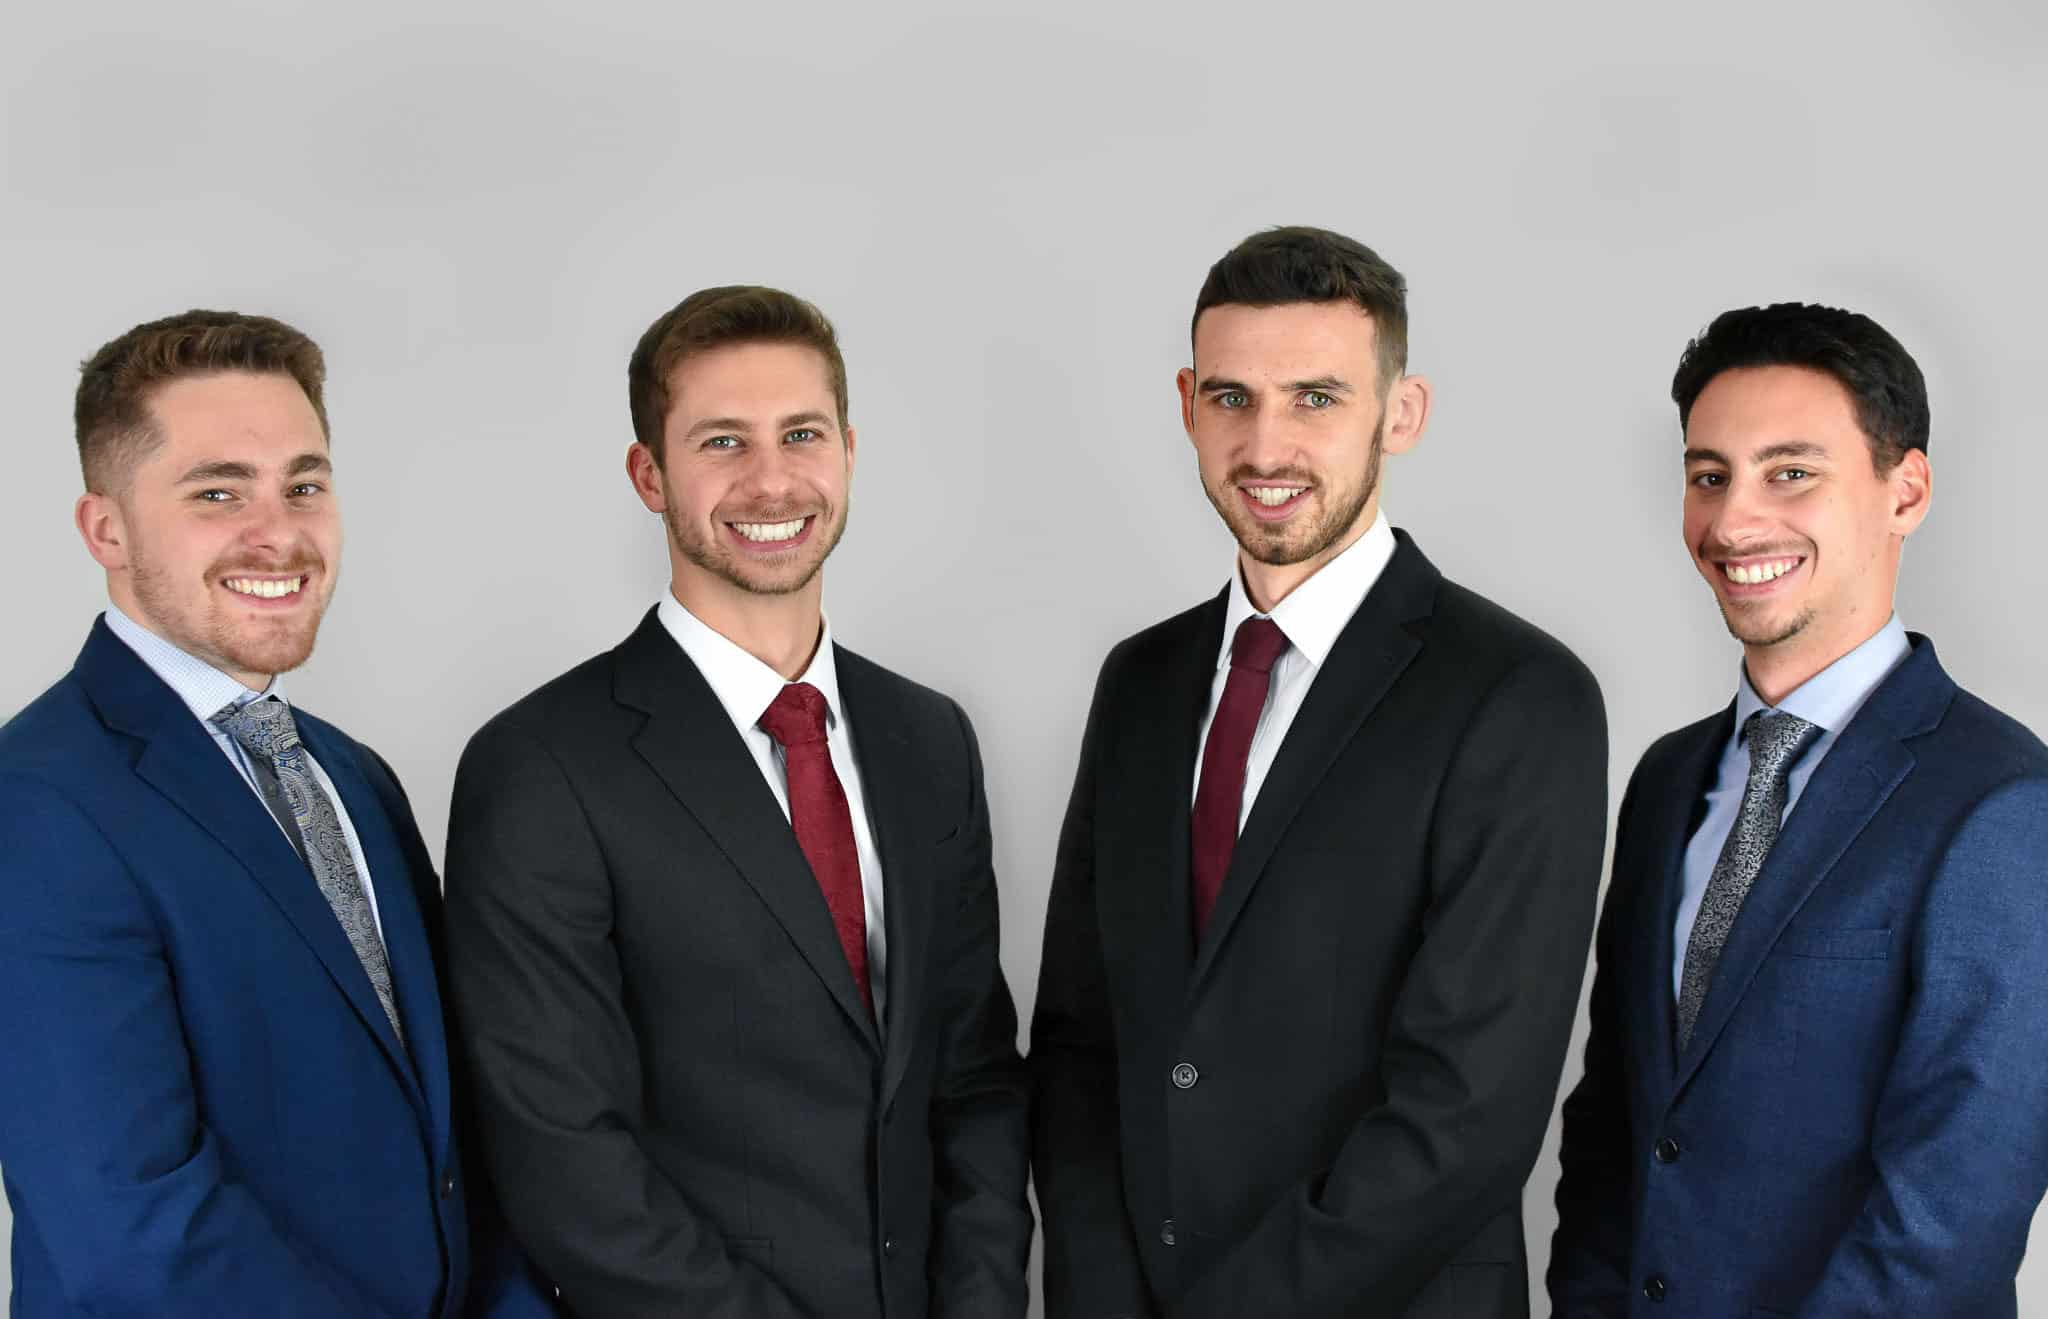 The Apogee Associates Team